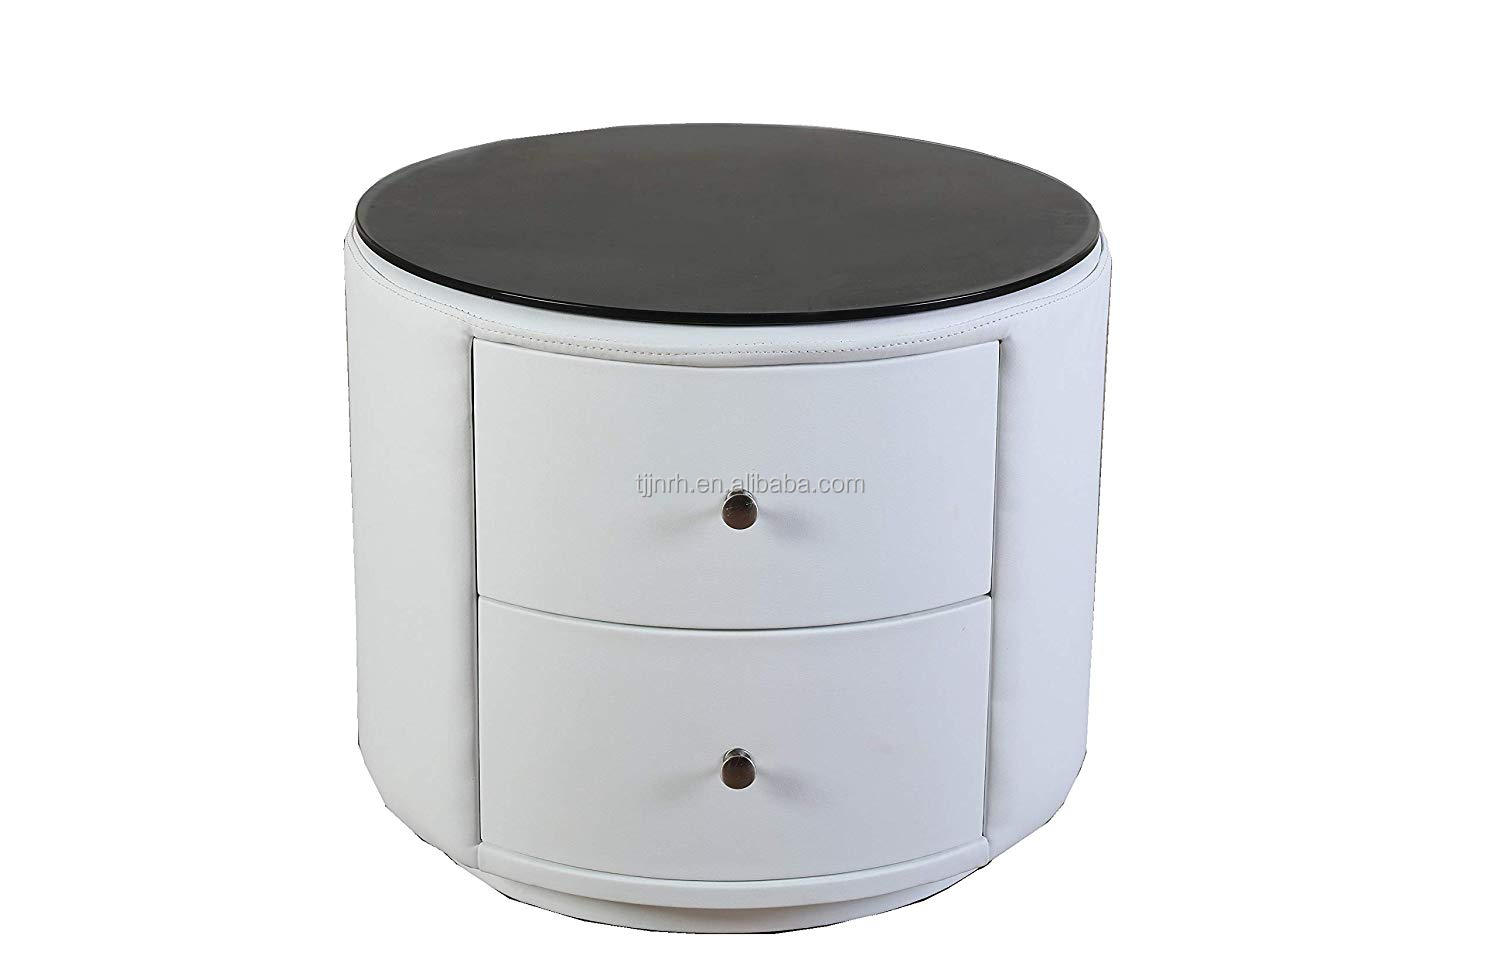 Simple White Modern Two Draws Round Nightstand Bedside Table Buy Two Draws Round Nightstand Bedside Table Product On Alibaba Com